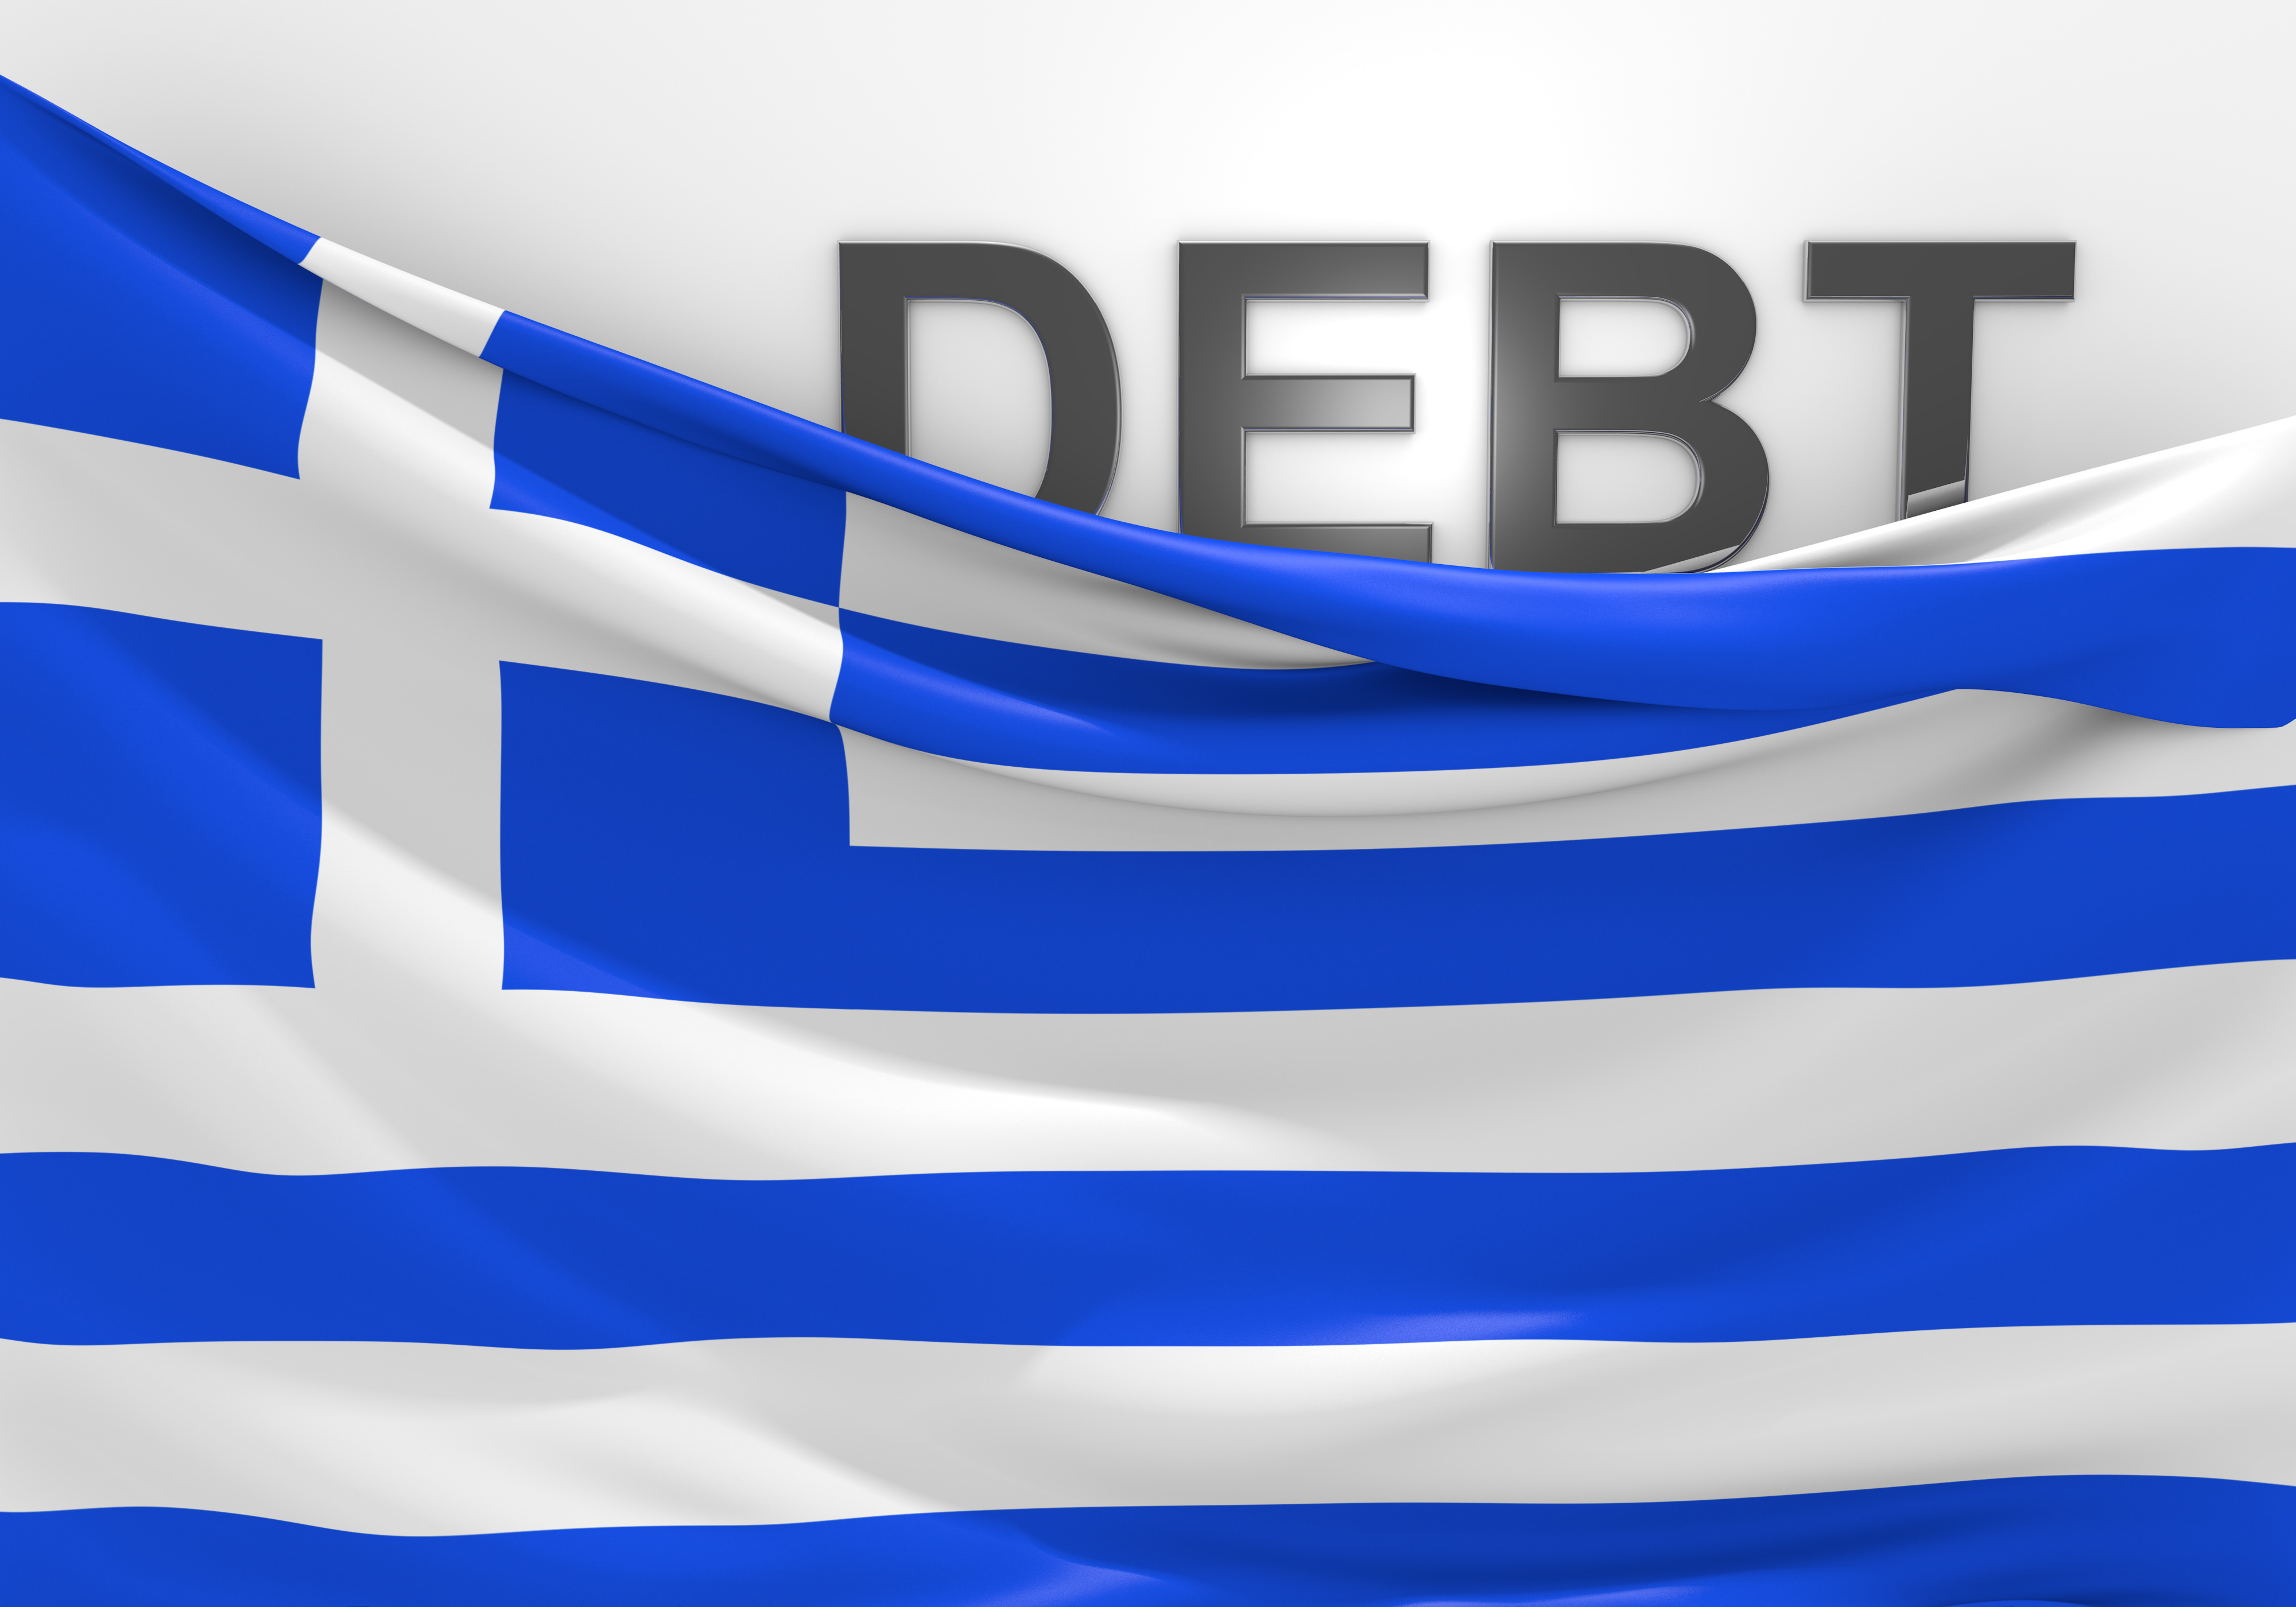 Conceptual image for talking points related to the Greece national debt crisis and bailout.